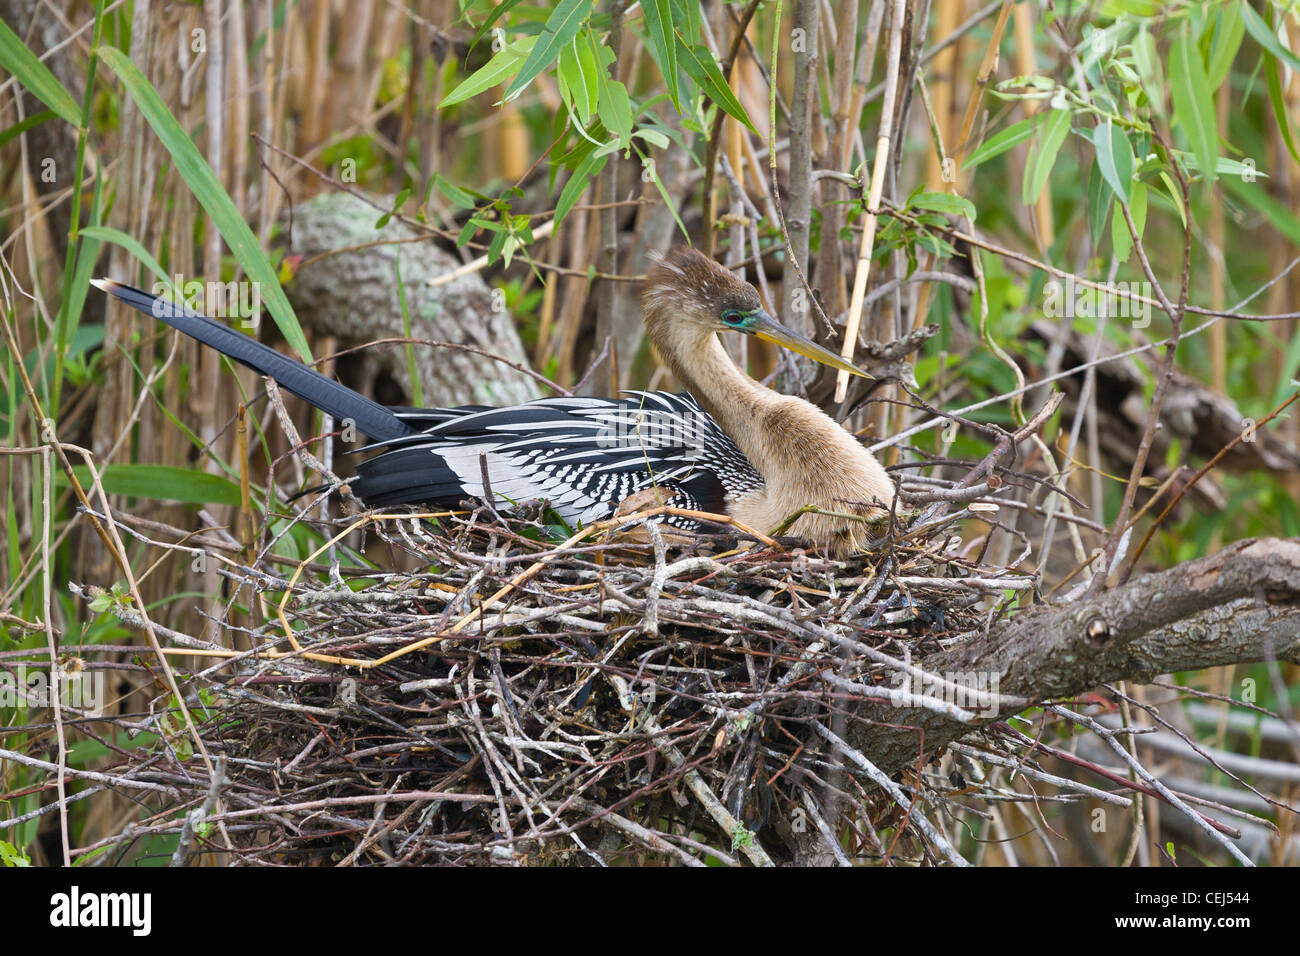 Anhinga bird on nest on the Anhiga Trail in the Royal Palm section of the Everglades National Park Florida - Stock Image